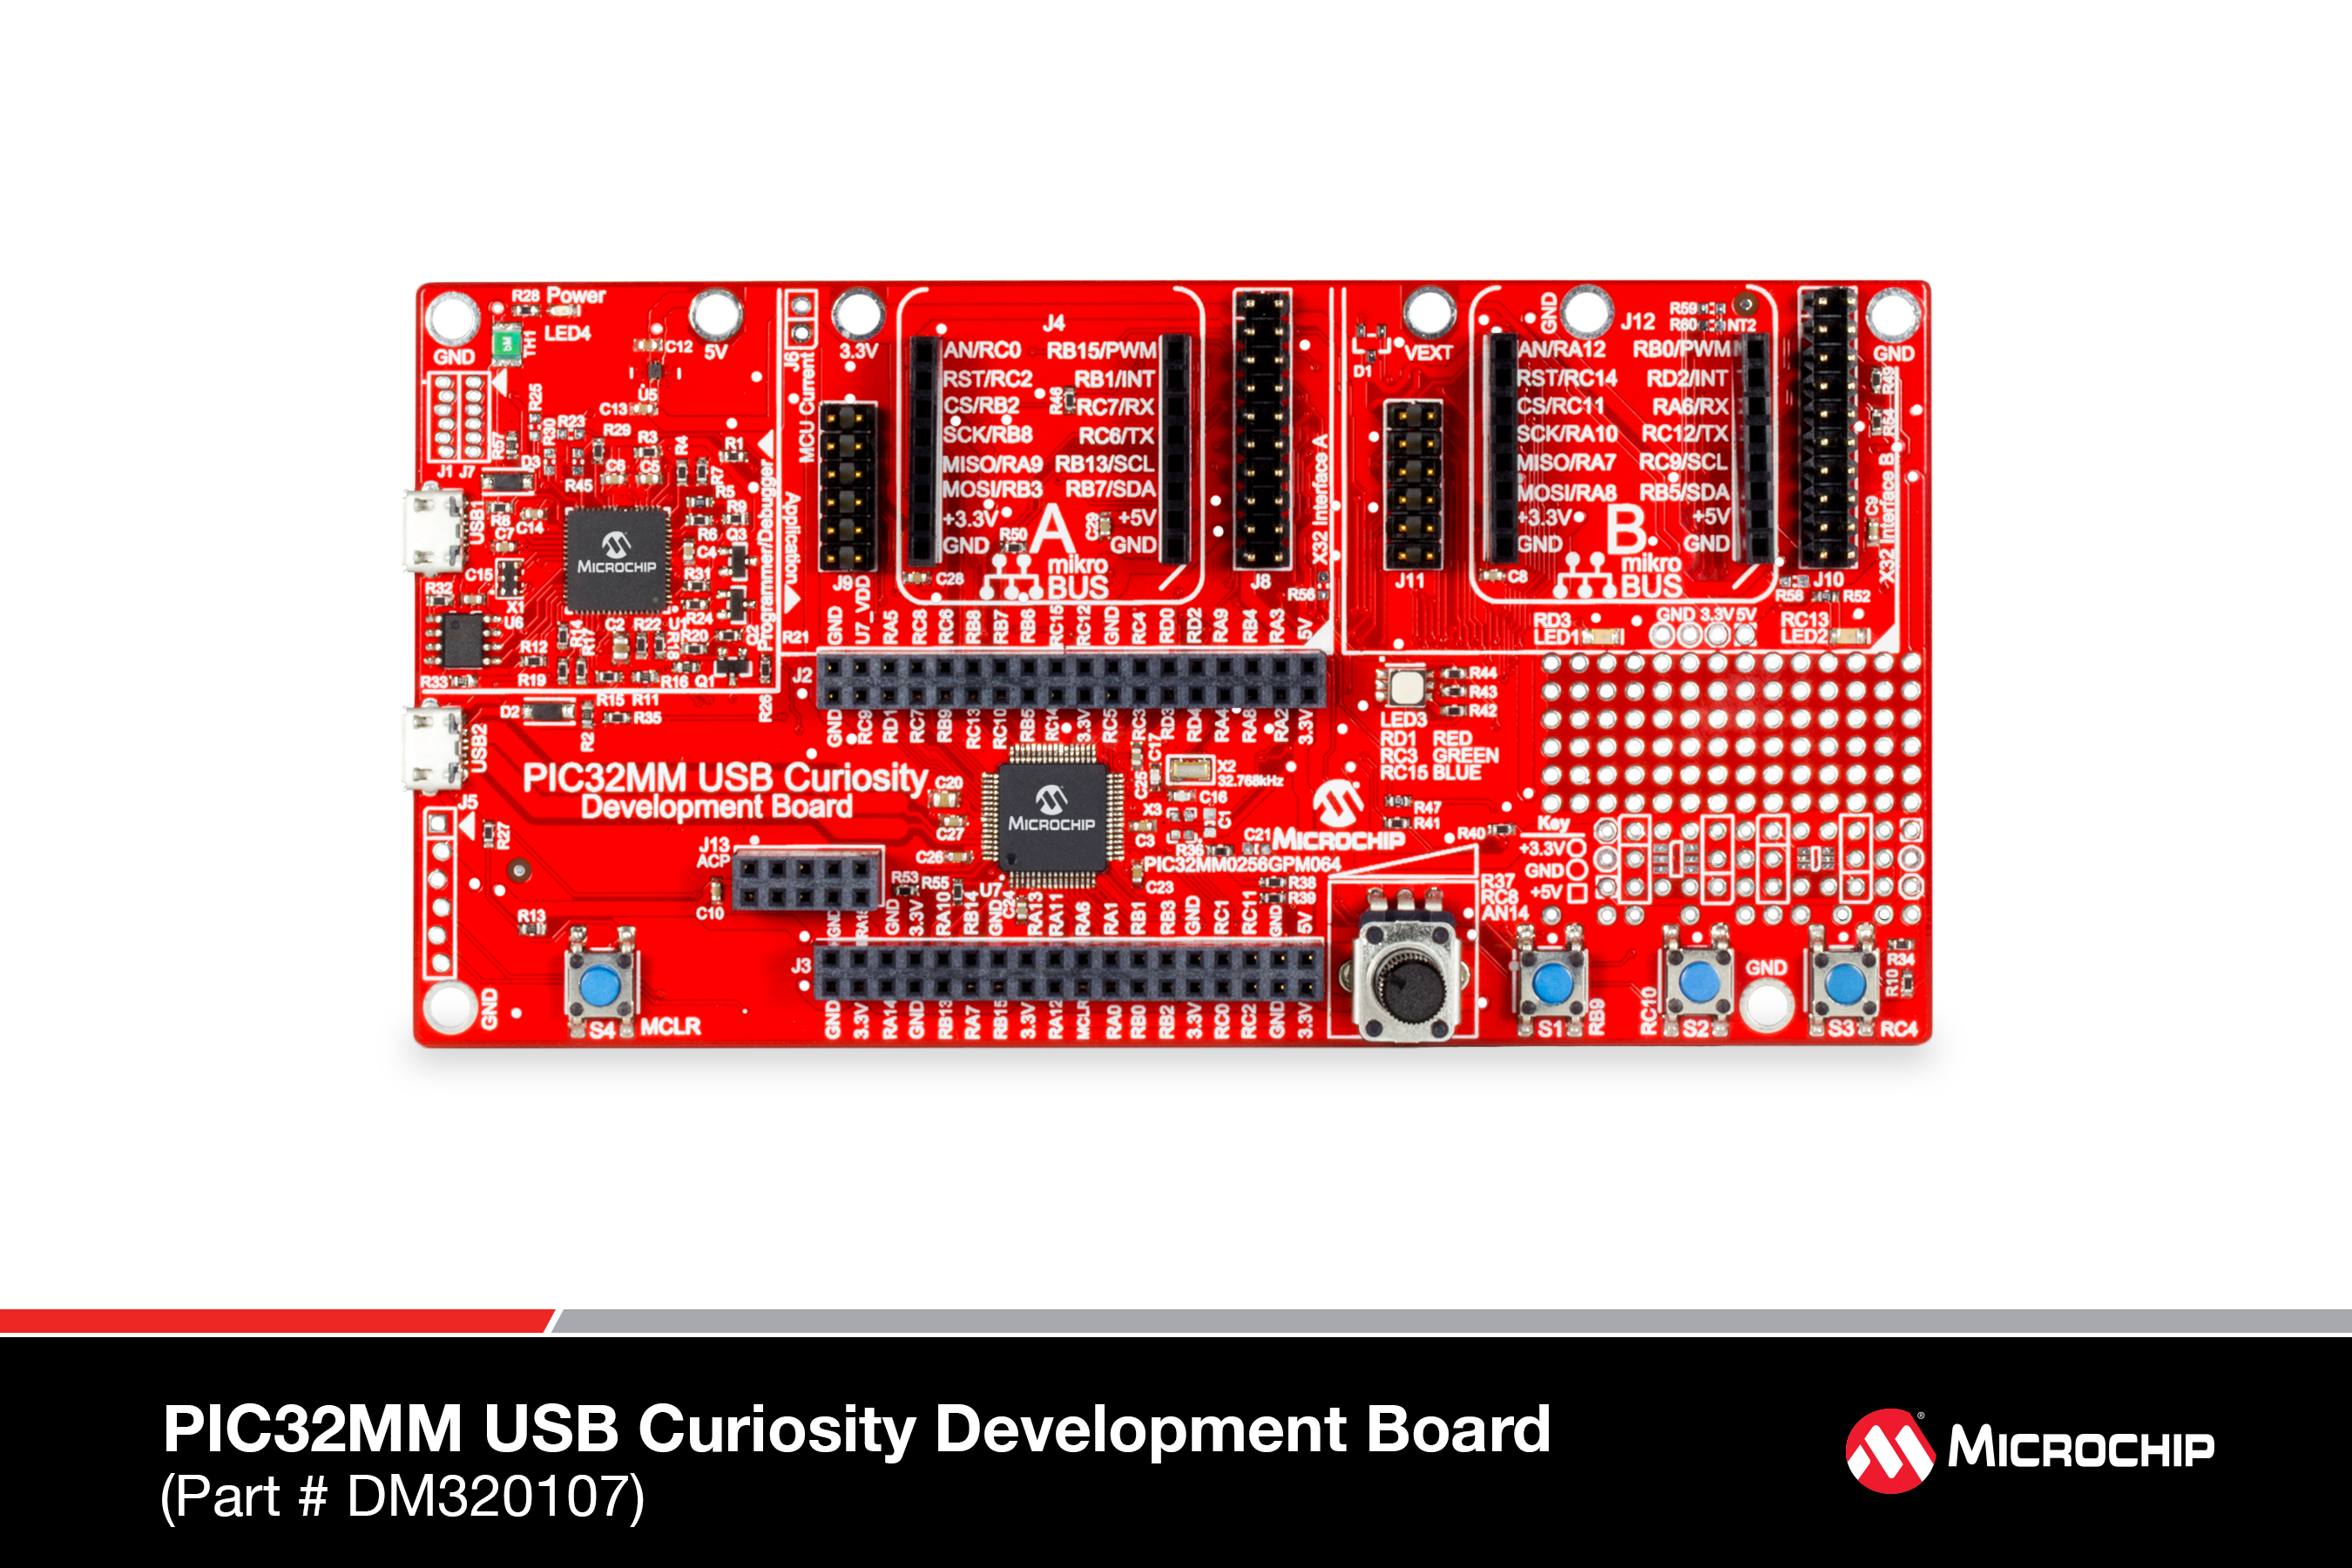 Development Tools Circuits Icsp In Circuit Serial Programming Board Based On Pic16f84 The Pic32mm Usb Curiosity Features New Extreme Low Power Xlp Gpm Family Pic32mm0256gpm064 Of Cost Microcontrollers